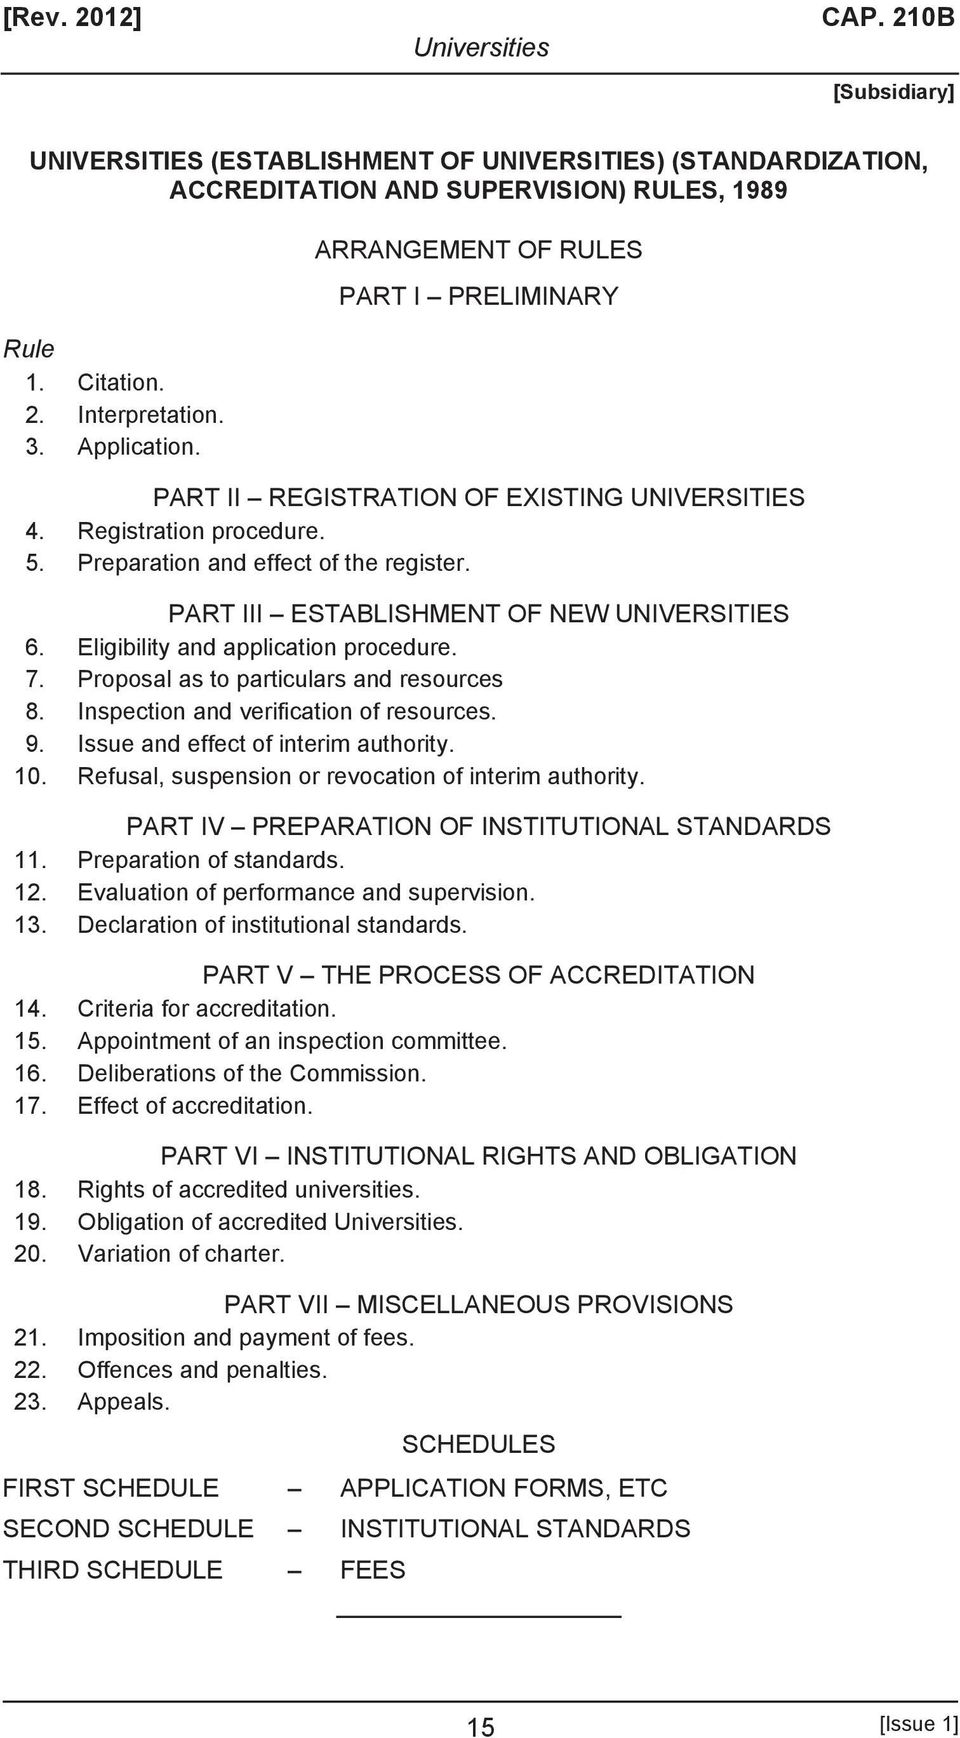 PART III ESTABLISHMENT OF NEW UNIVERSITIES 6. Eligibility and application procedure. 7. Proposal as to particulars and resources 8. Inspection and verification of resources. 9.